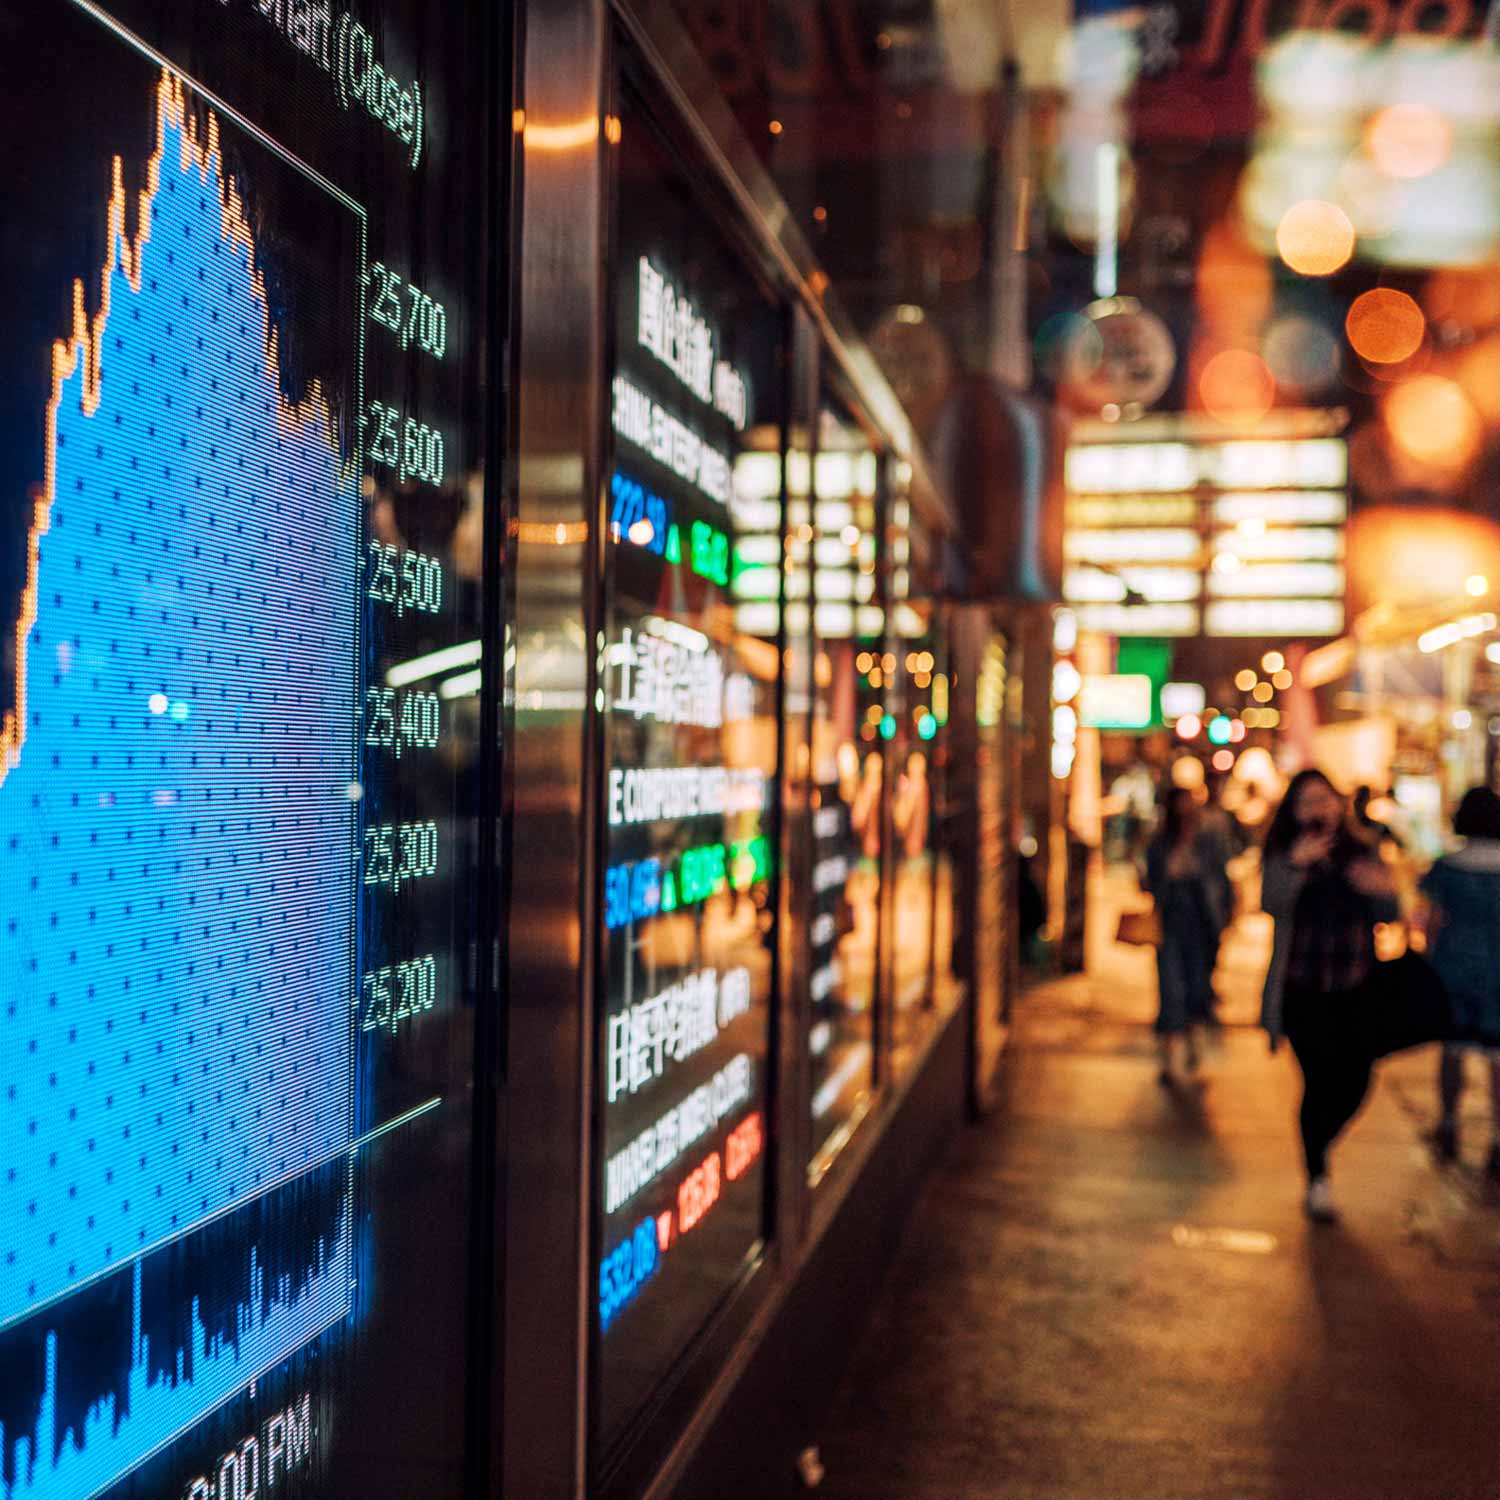 Street scape in China with screens projecting stock market